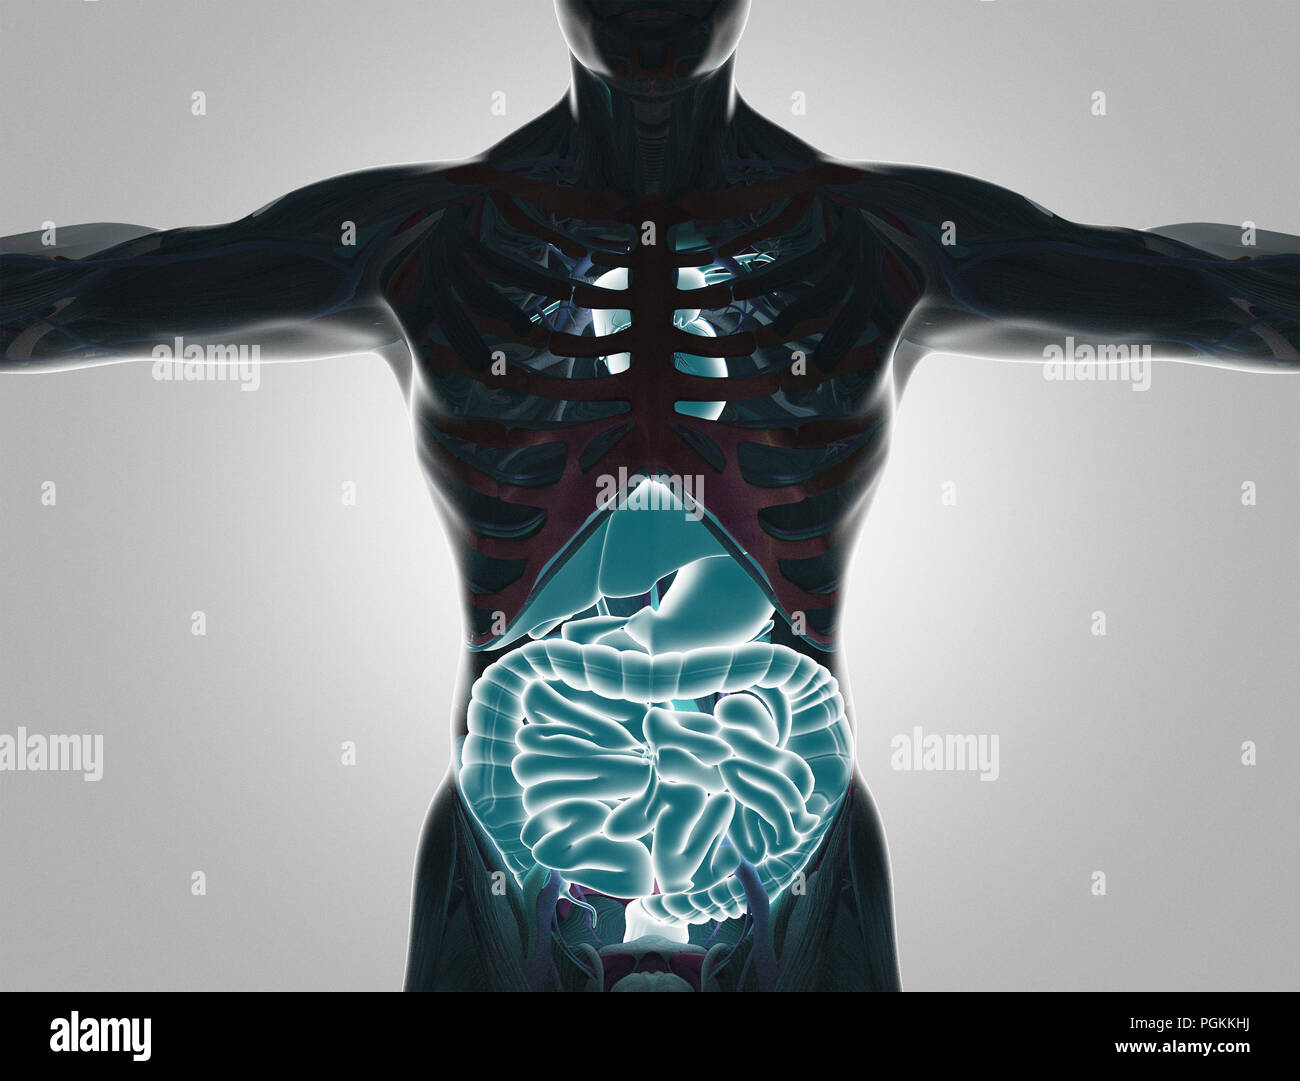 Human body with visible organs, 3d render illustration Stock Photo ...